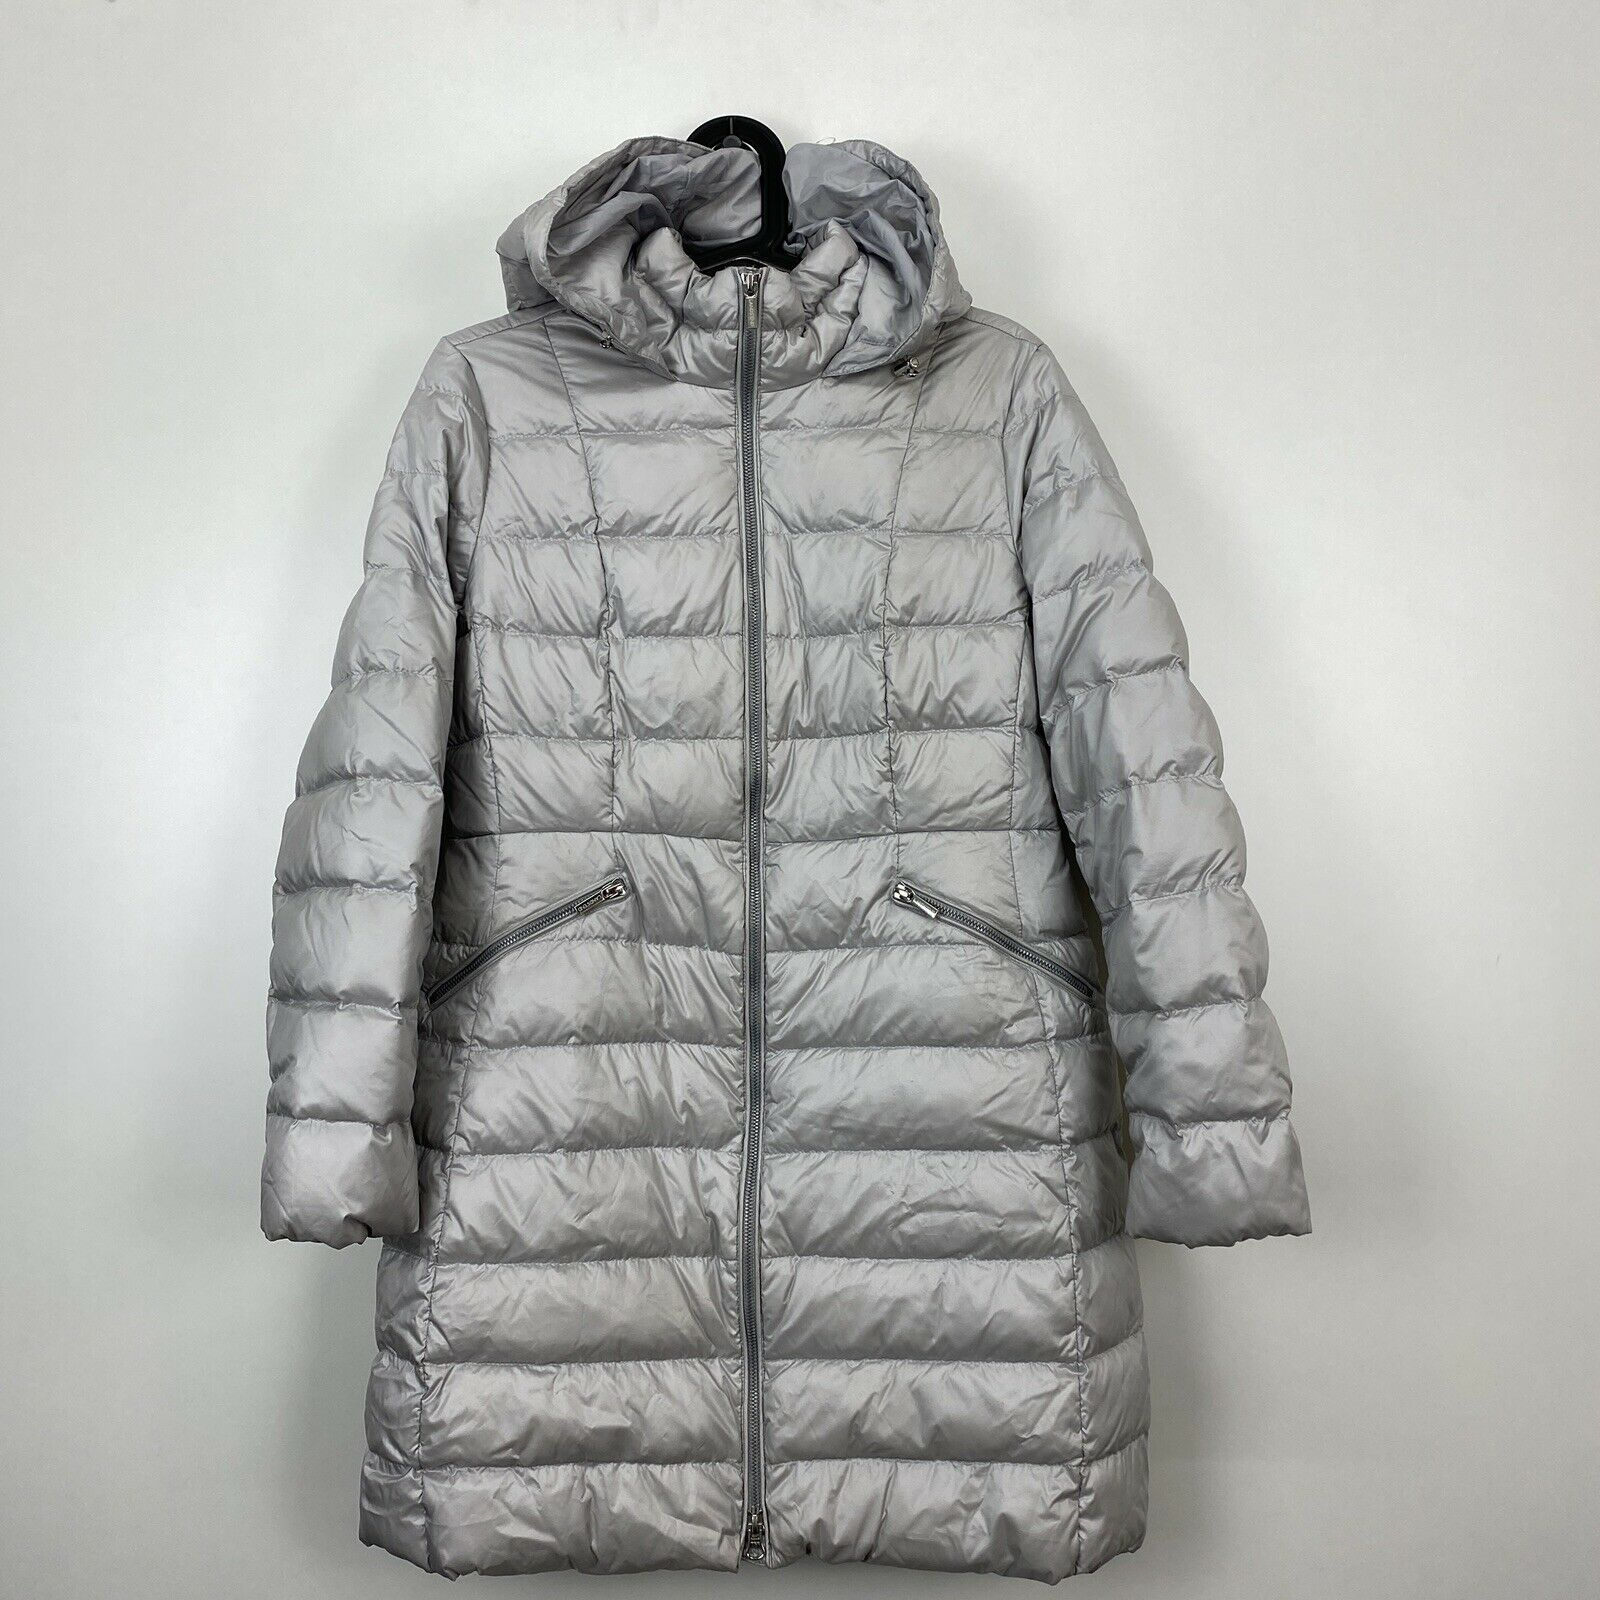 LANDS END Women's Silver/Grey Down Filled Winter Padded Coat w/Hood Size S Small